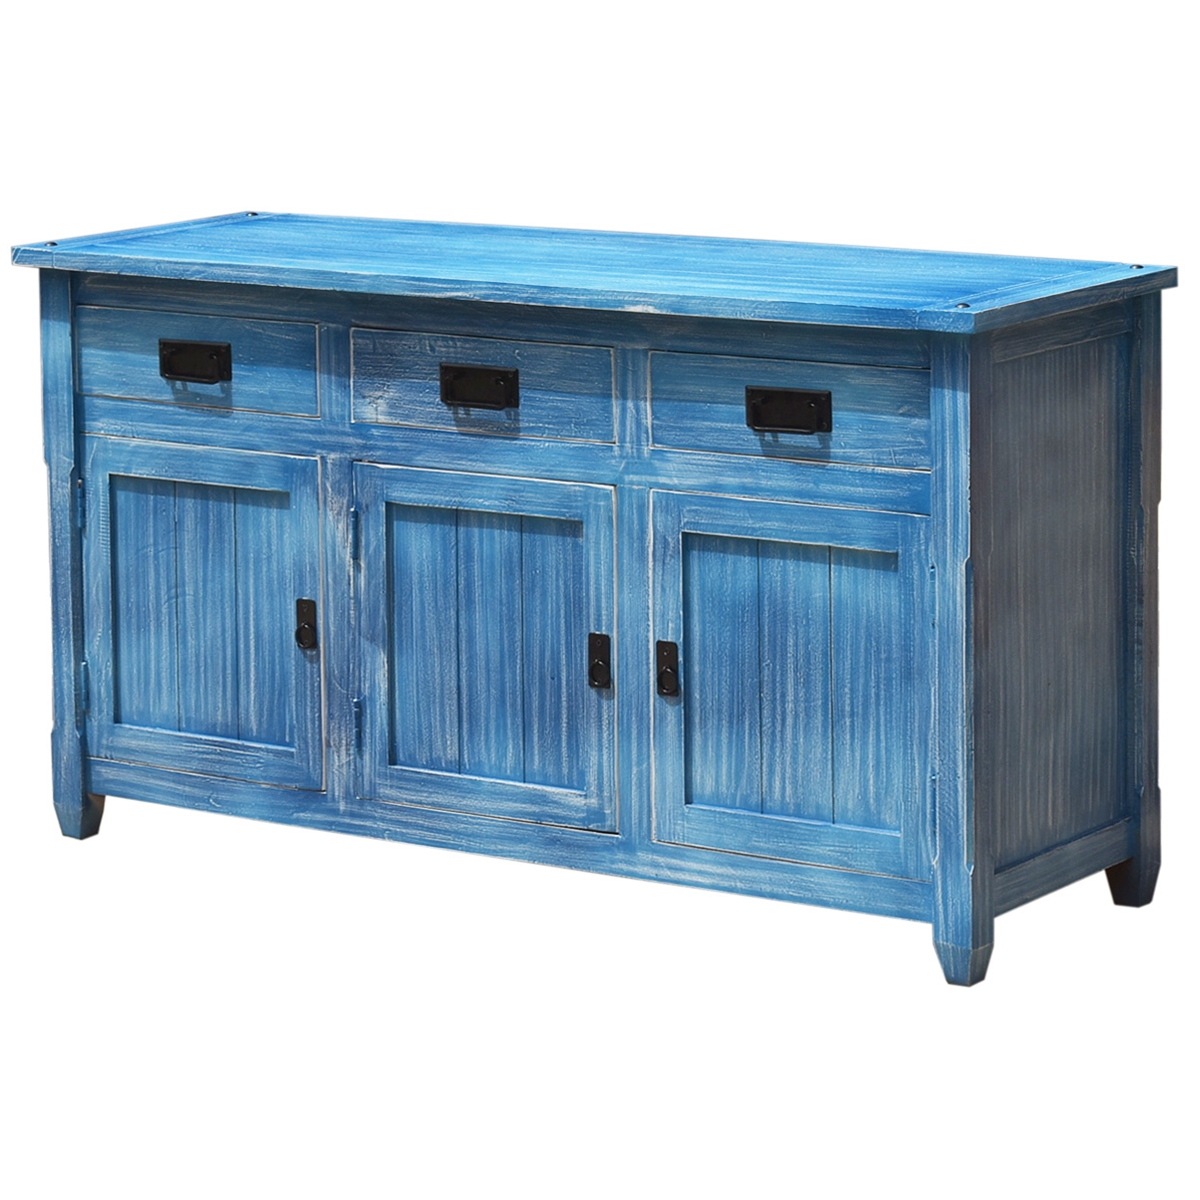 Appalachian Distressed Sky Blue Solid Wood 3 Drawer Sideboard